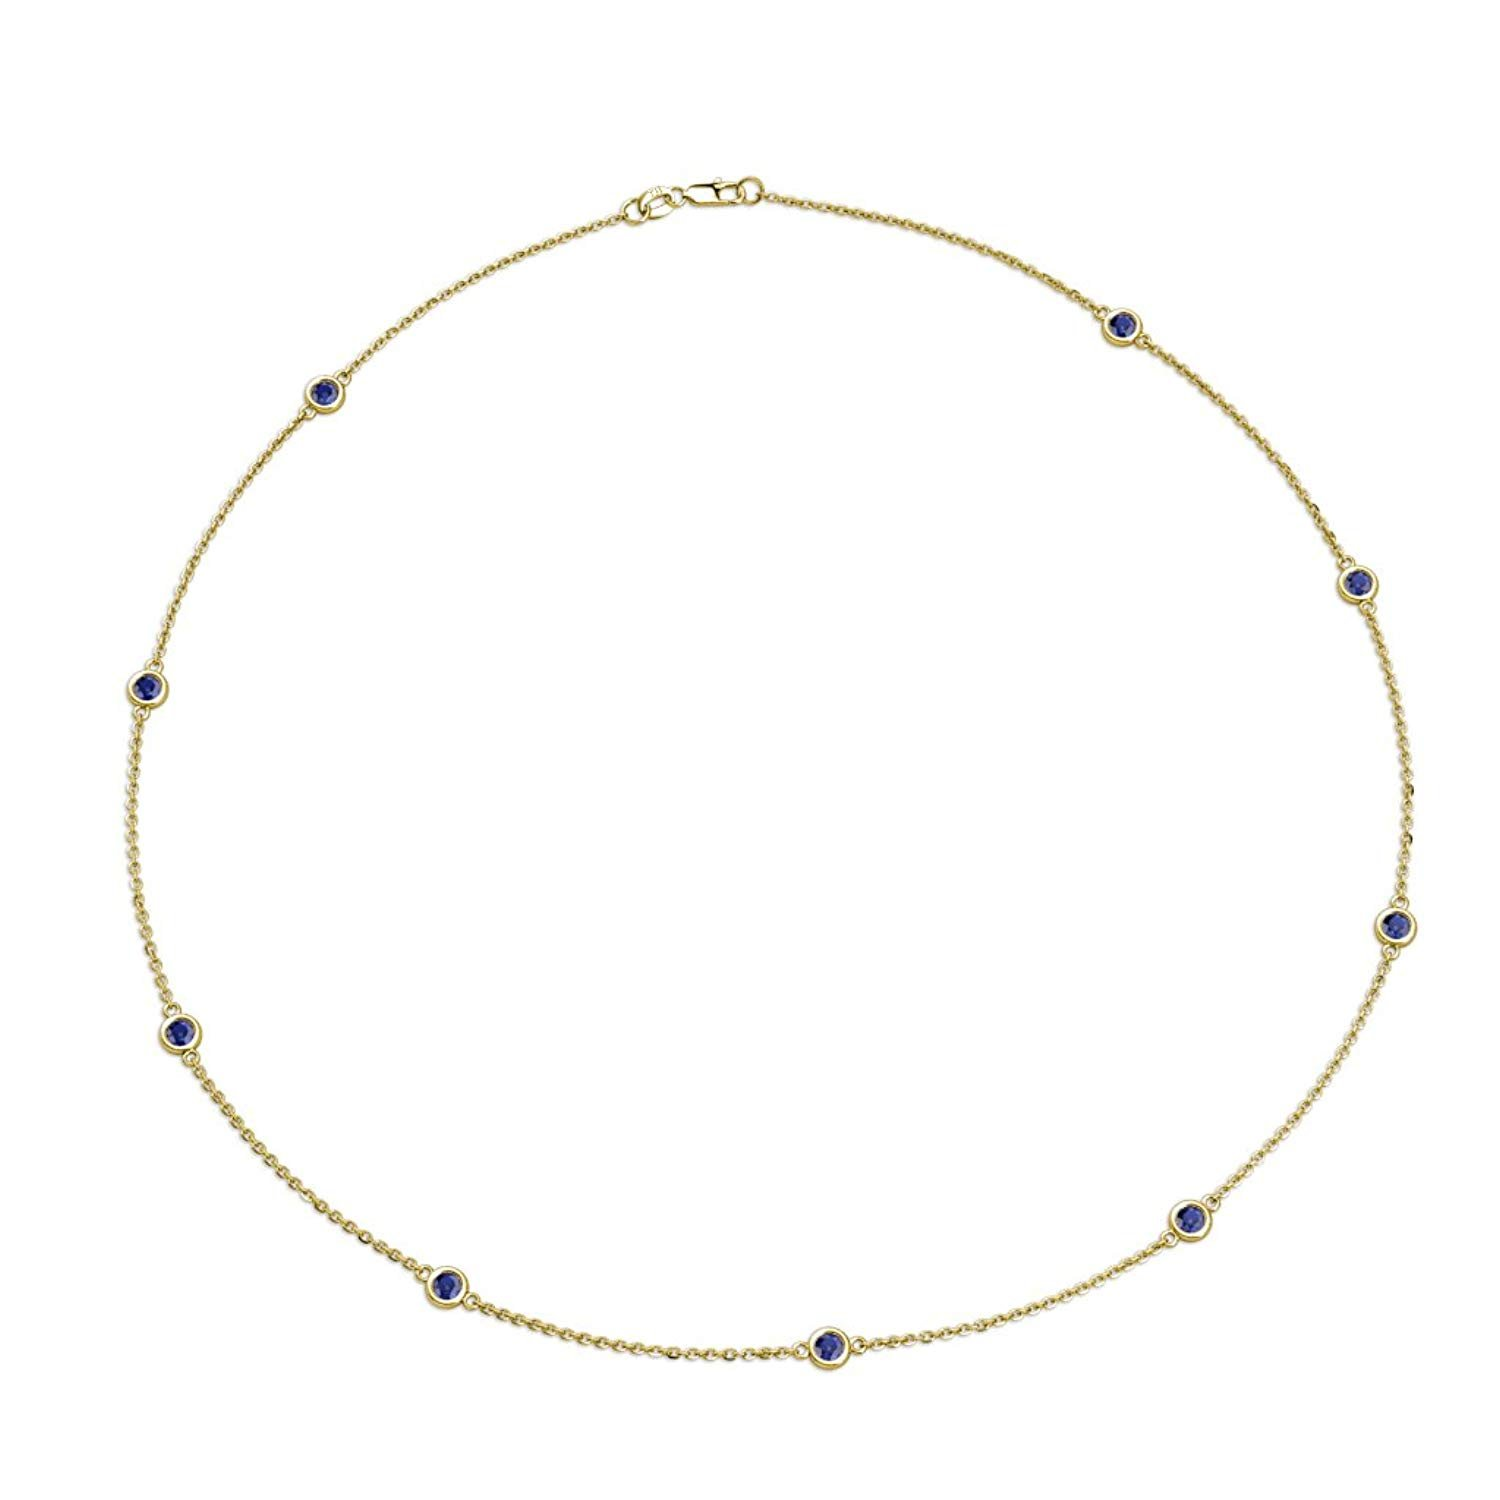 Blue Sapphire 9 Stations Necklace 0.66 cttw in 14K Yellow Gold by TriJewels